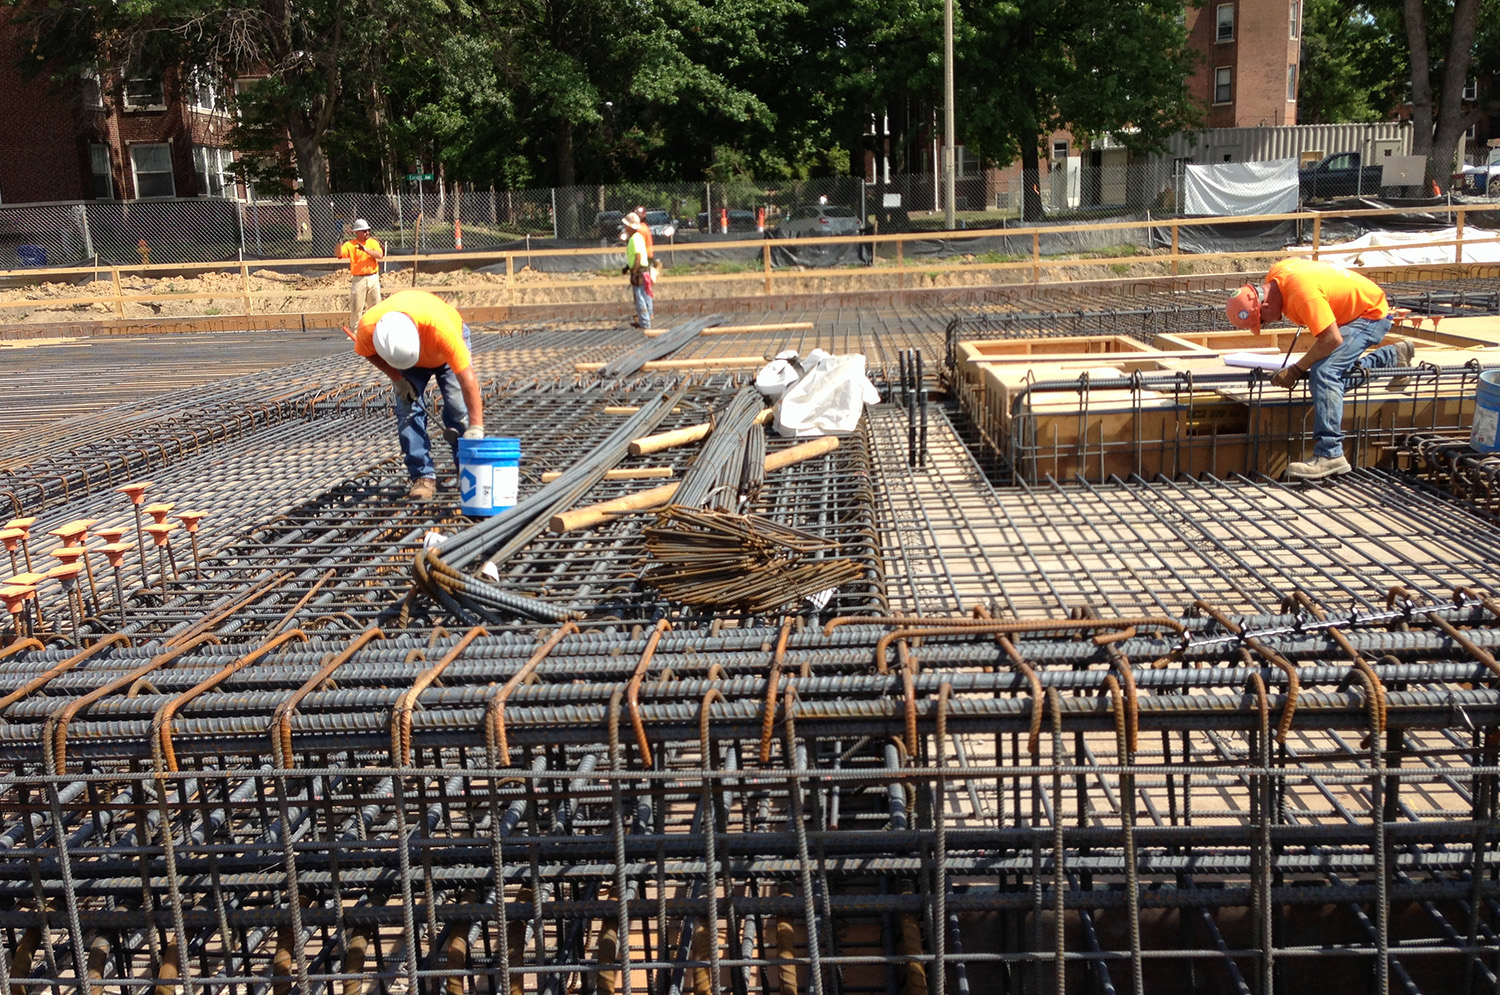 Rebar_Specialist_wash_u_student_housing_5